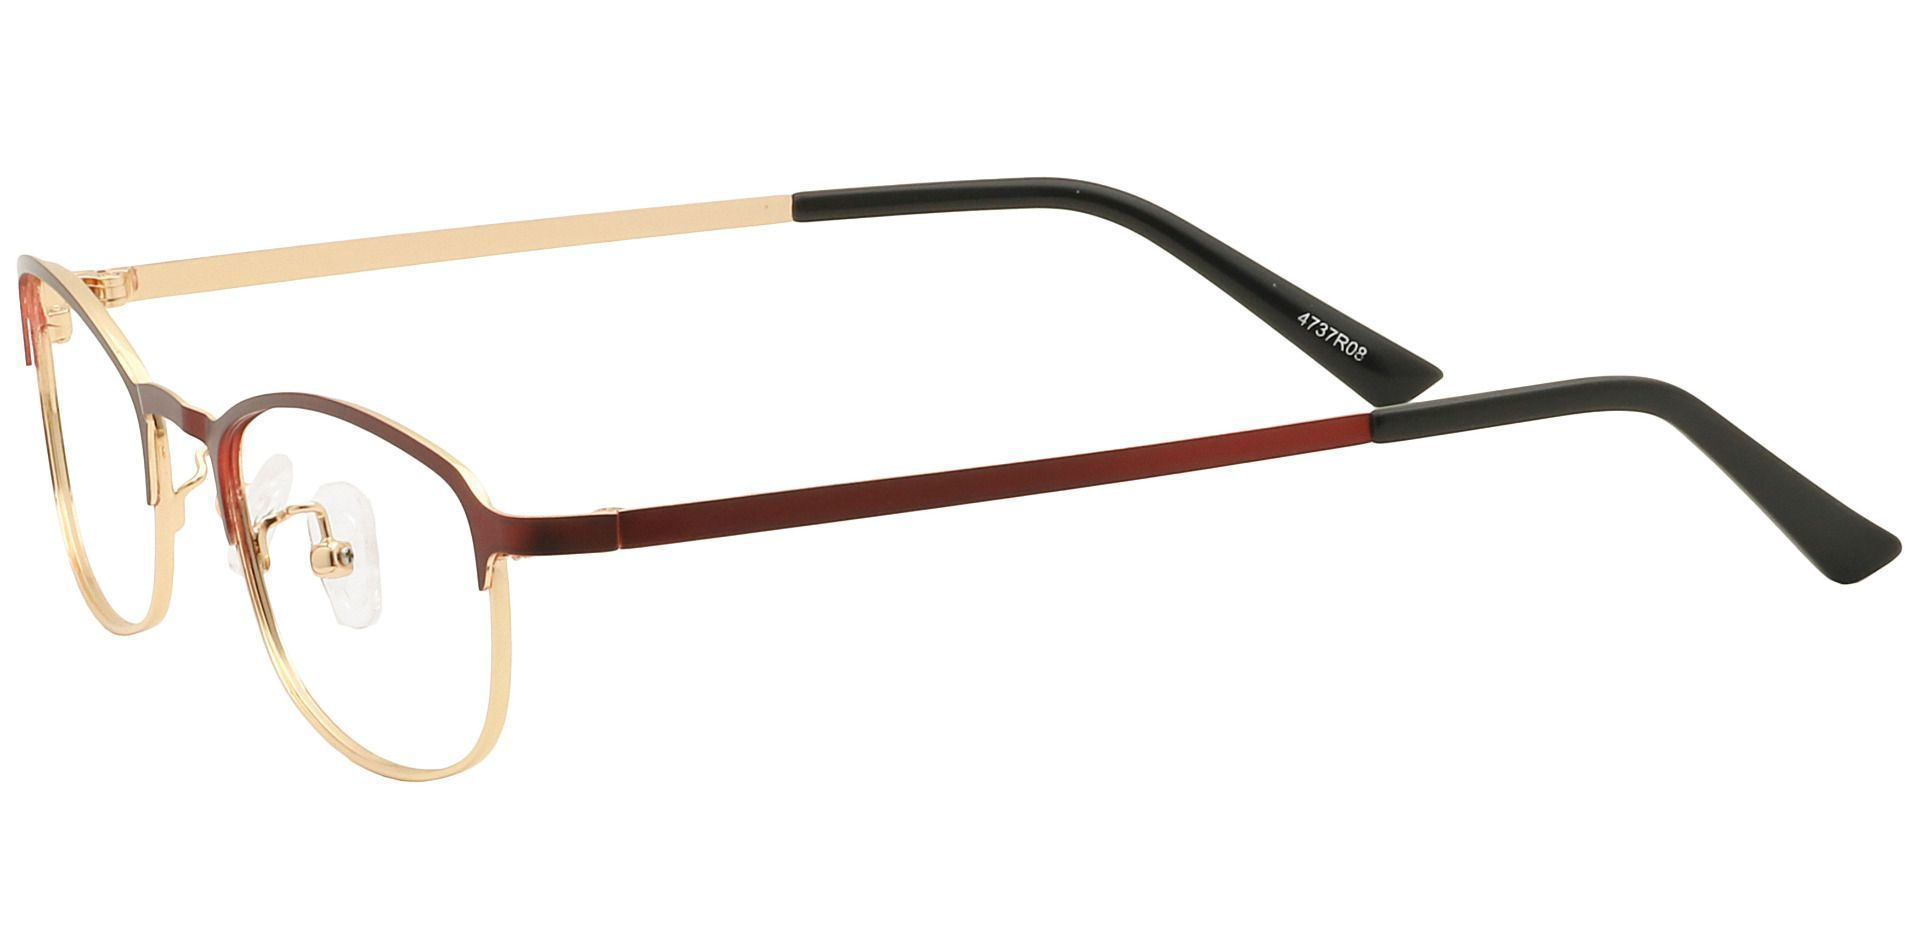 Tyrell Oval Reading Glasses - Red